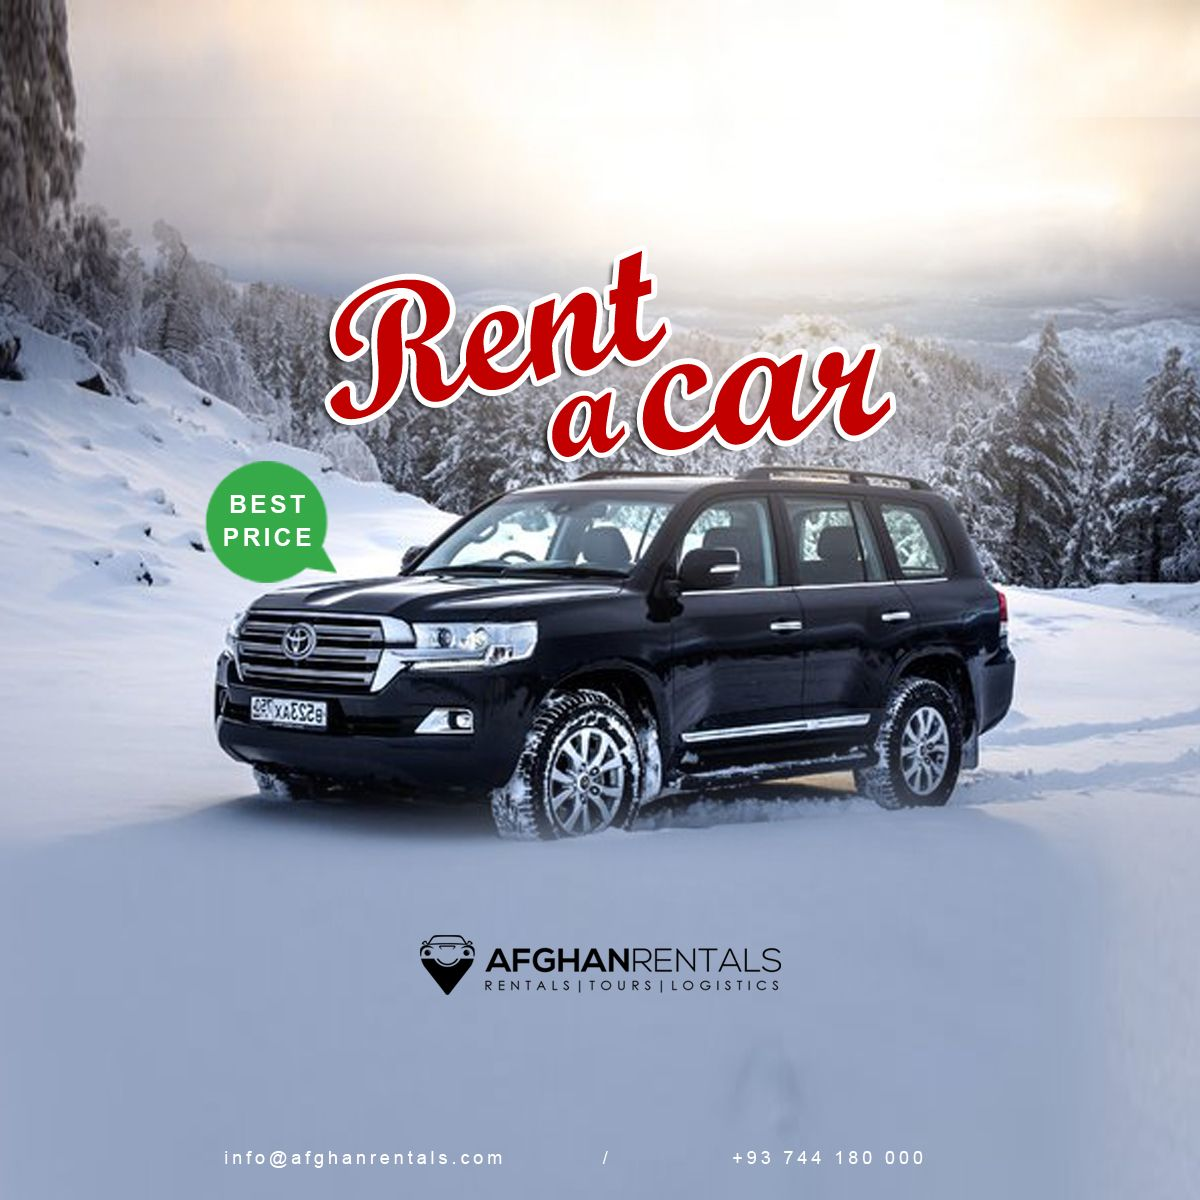 Rental And Pricing Information: Rent A Car In #Afghanistan At Best #Price! Info